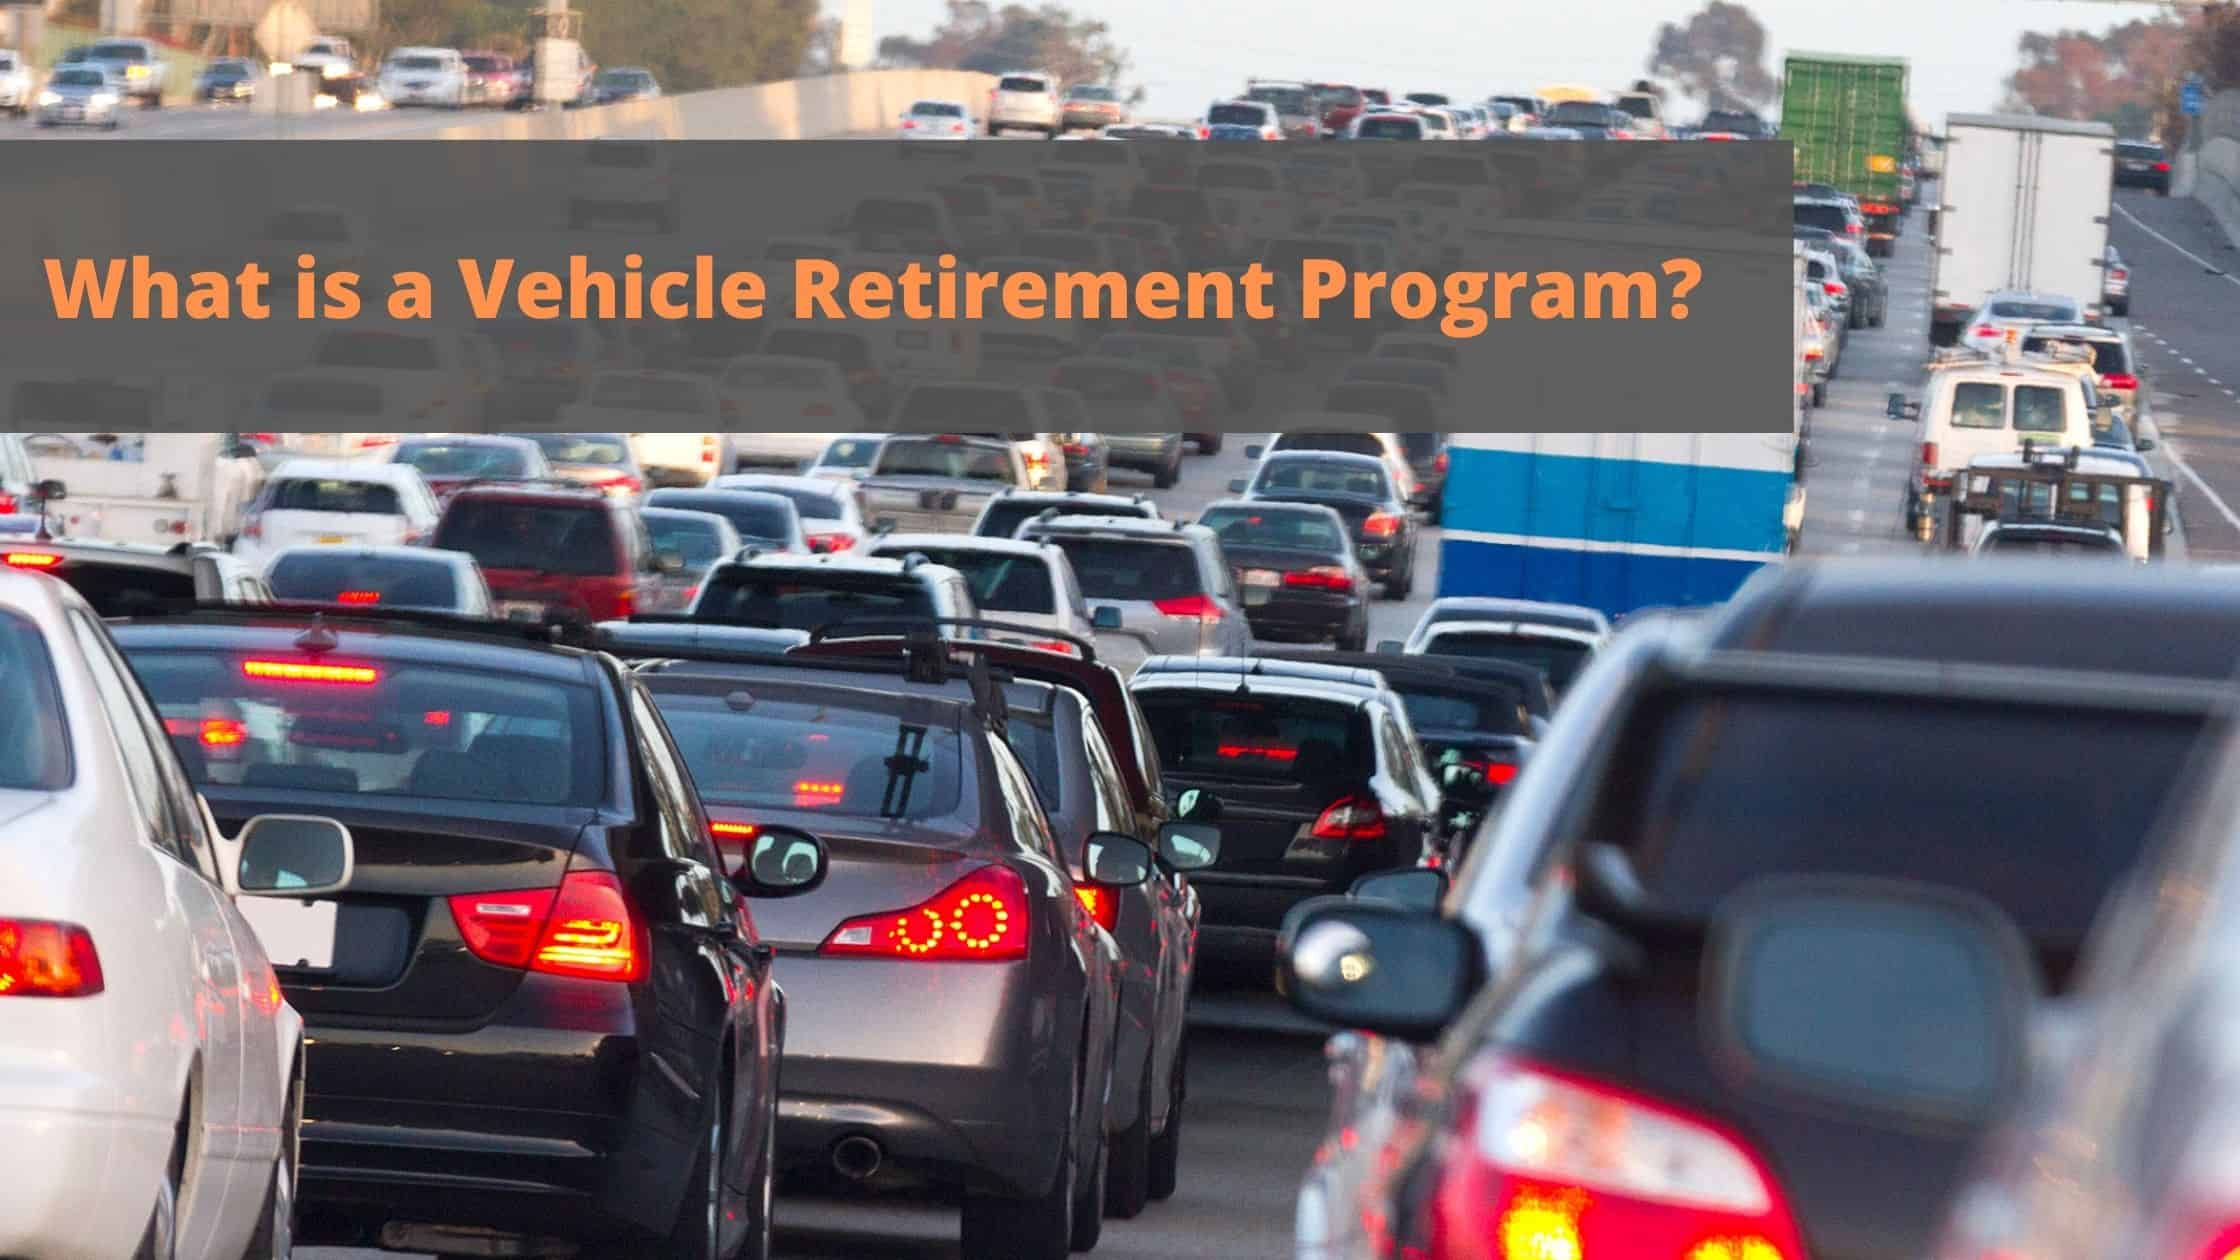 What is a Vehicle Retirement Program?